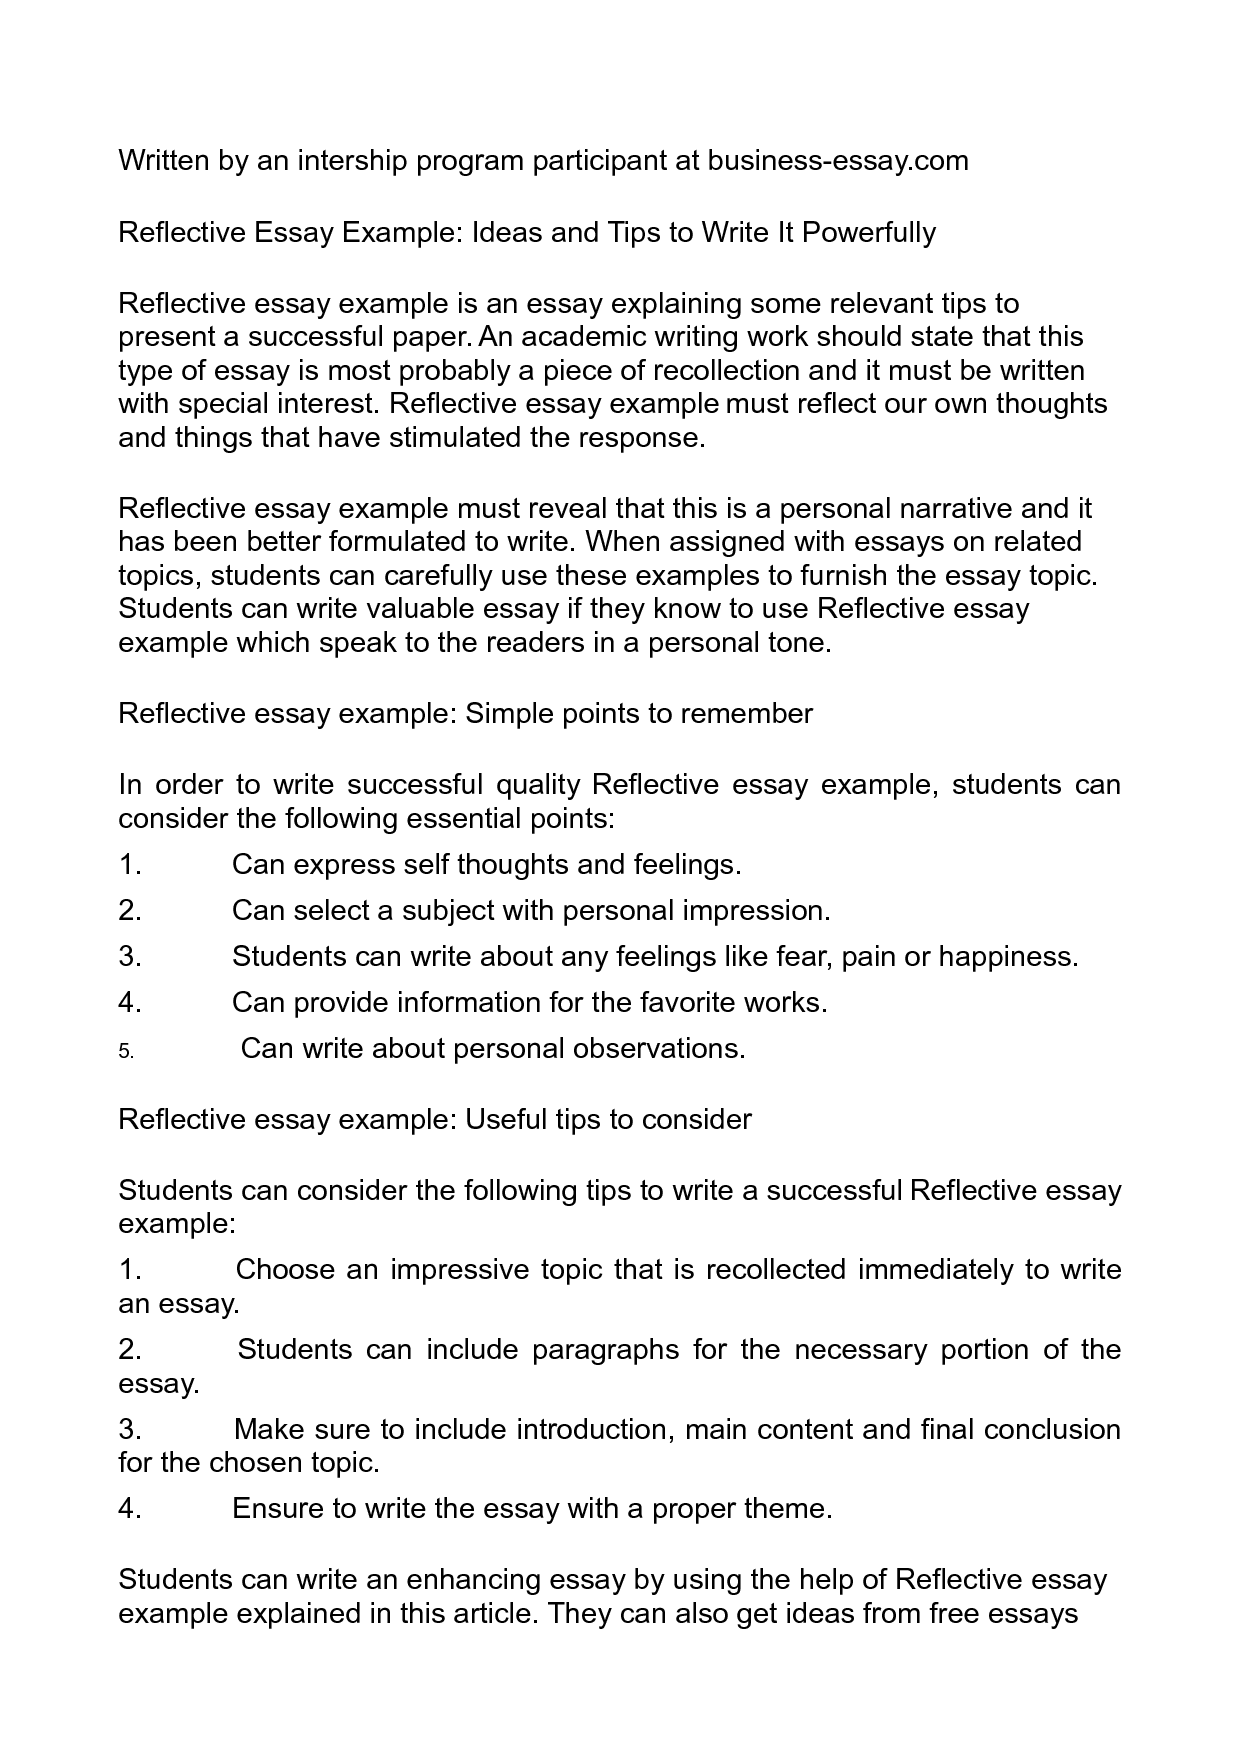 005 Essay Example 1btuopqhuu Reflective Magnificent Outline Narrative Pdf Full